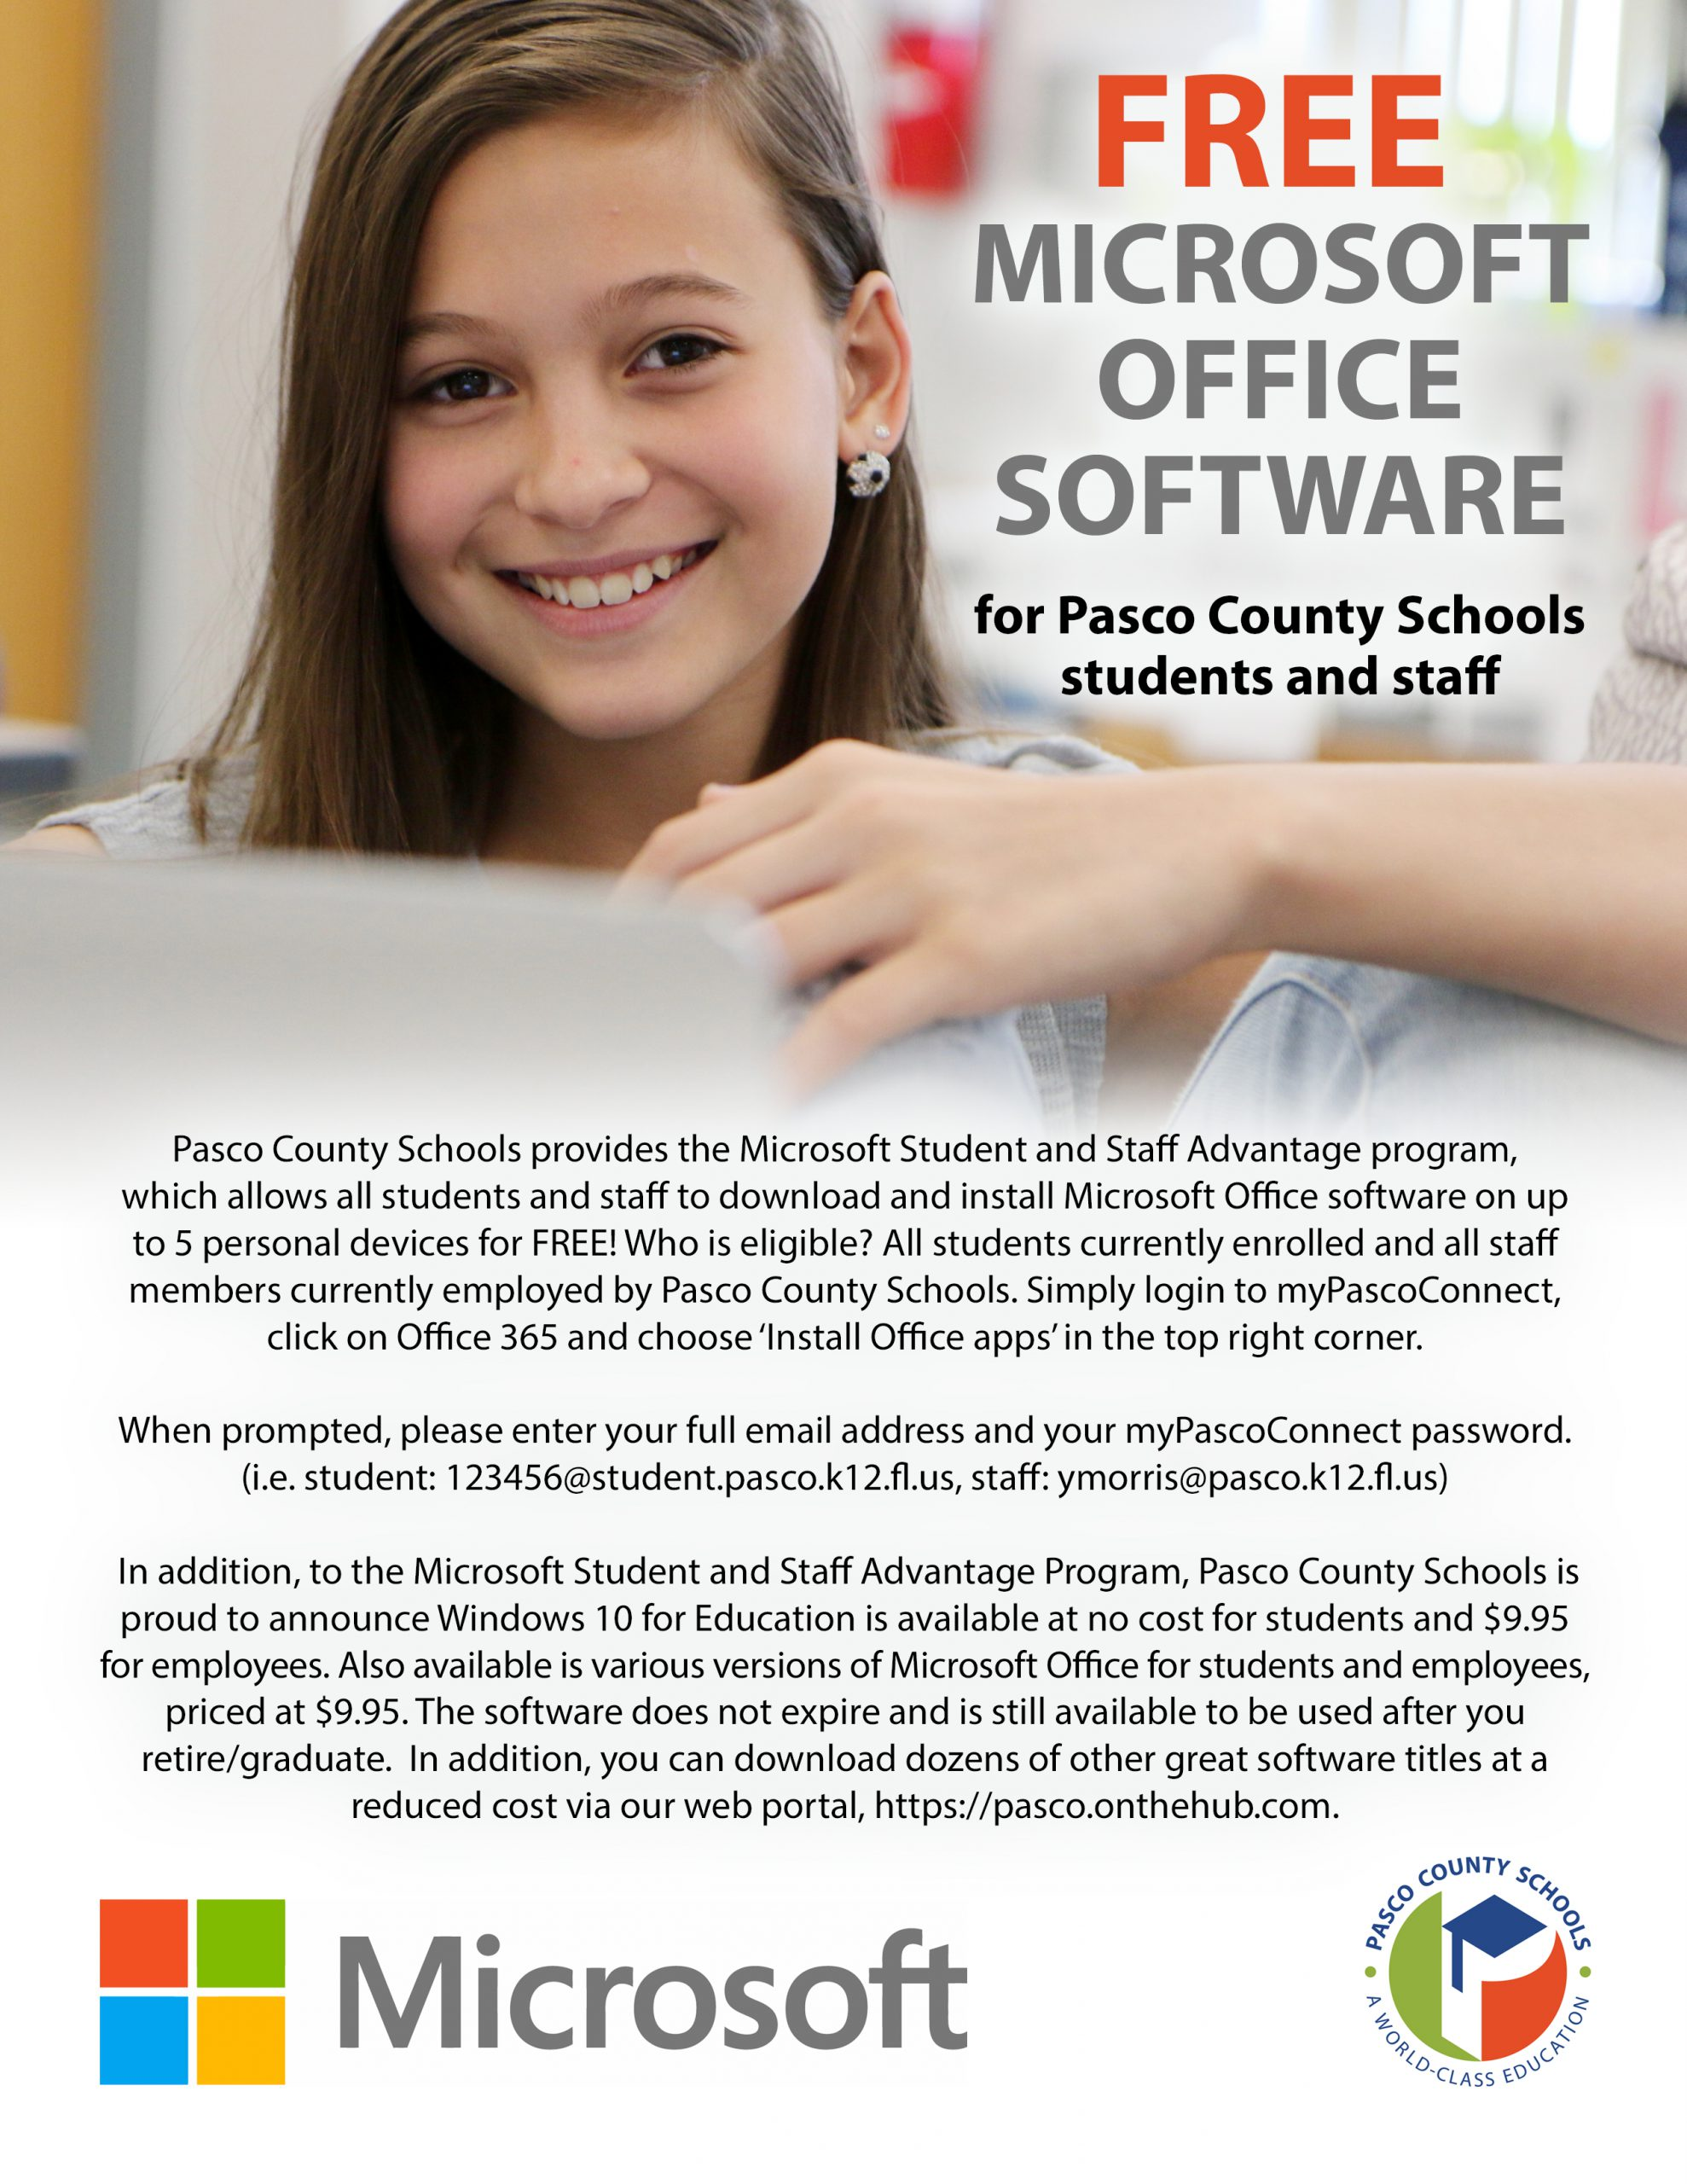 Instructions for getting Office365 for free for Pasco Students